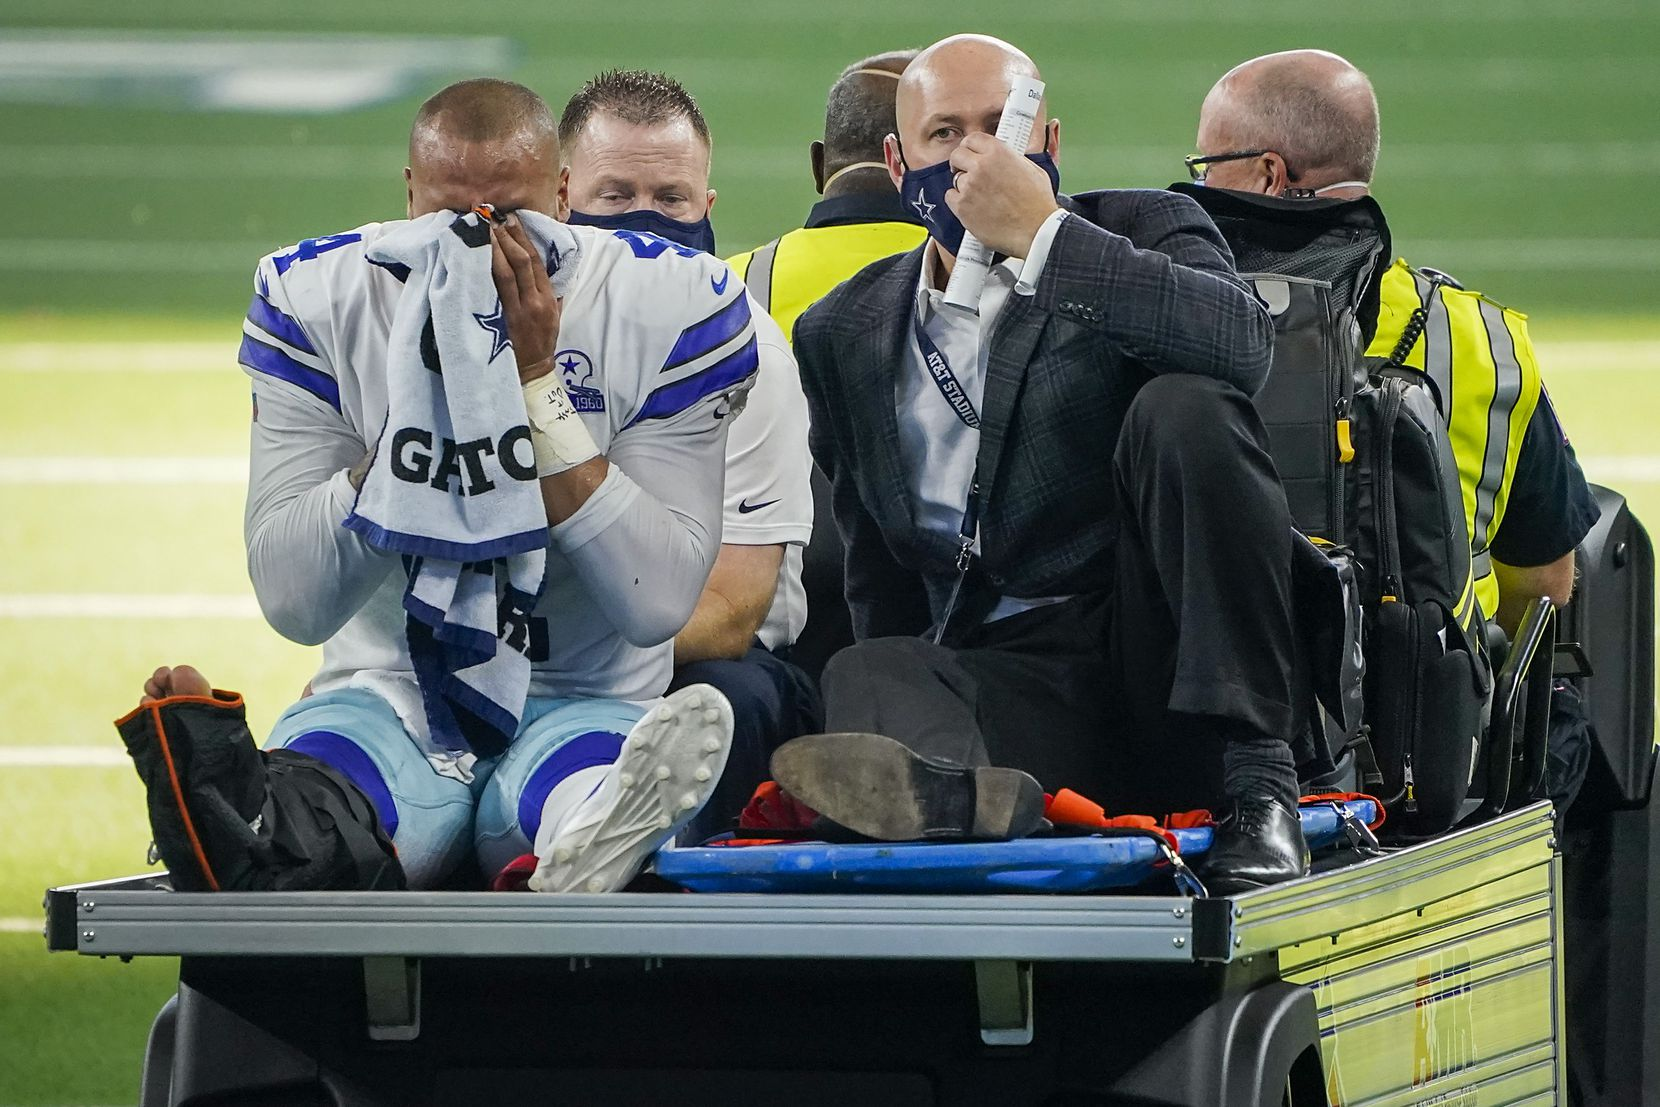 Dallas Cowboys quarterback Dak Prescott leaves the field on a cart after being injured on a tackle by New York Giants cornerback Logan Ryan during the third quarter of an NFL football game at AT&T Stadium on Sunday, Oct. 11, 2020, in Arlington.